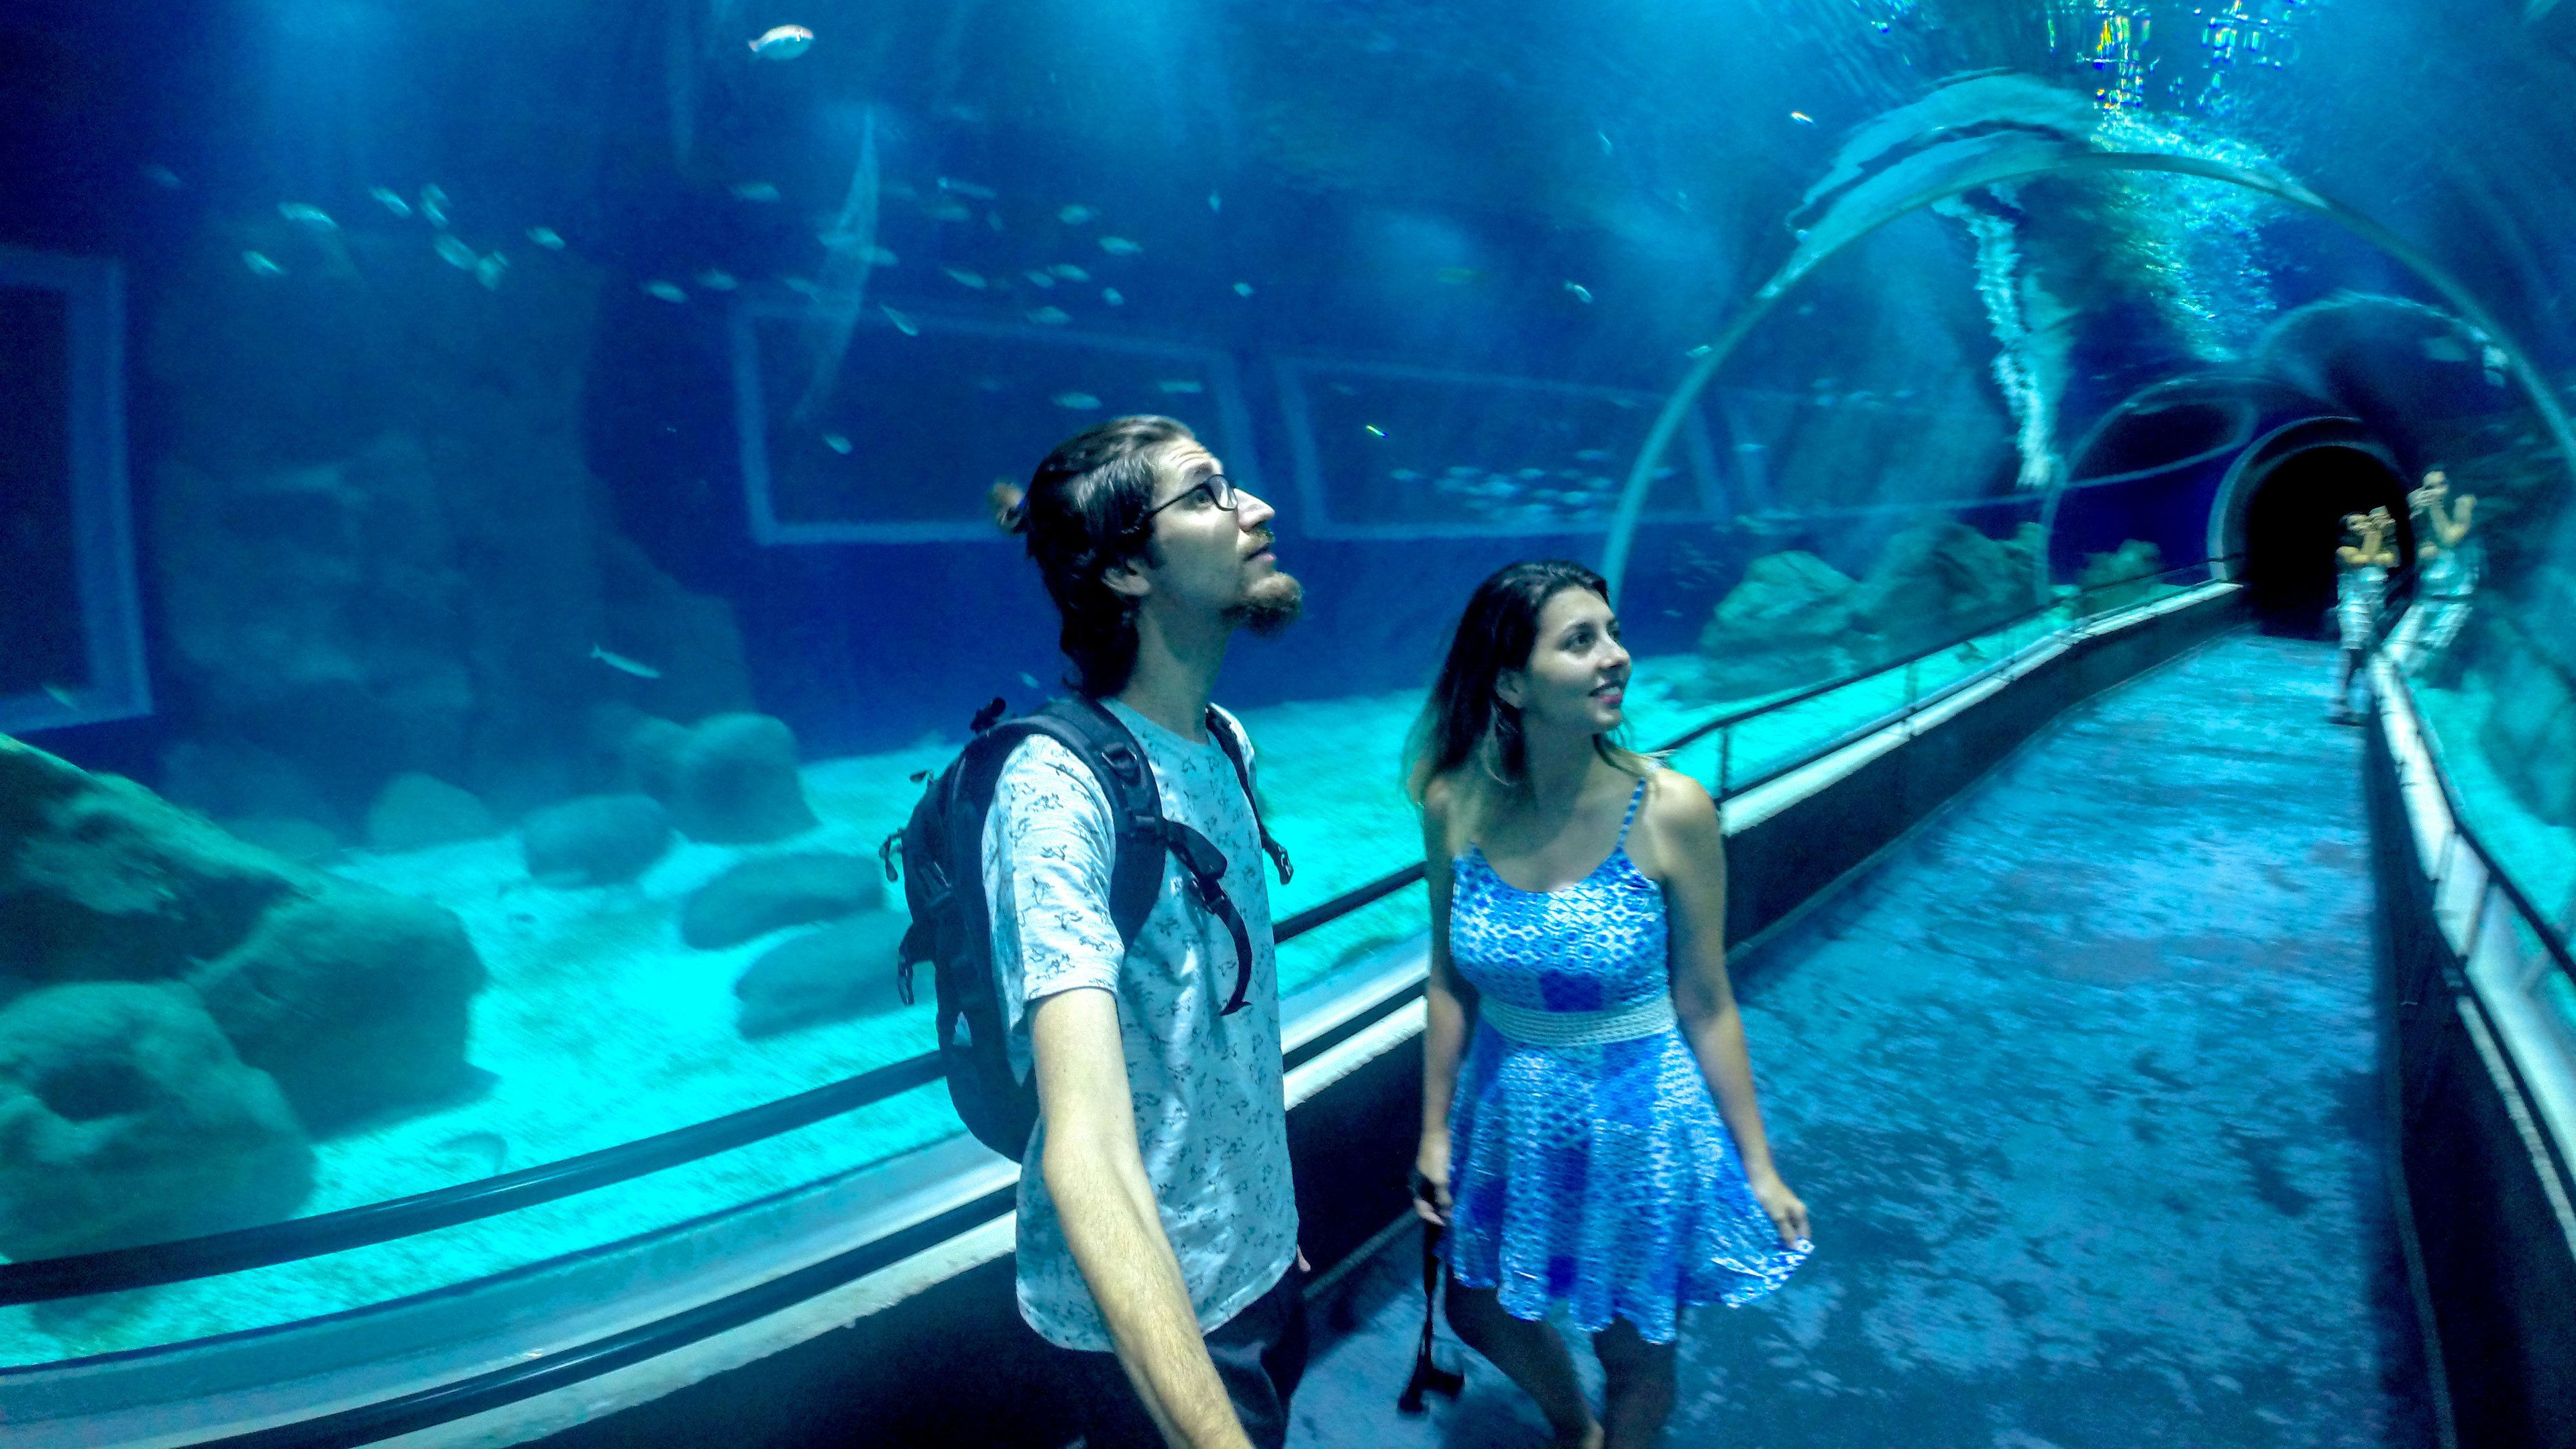 Man and Woman in tunnel of Aquarium in Rio De janeiro